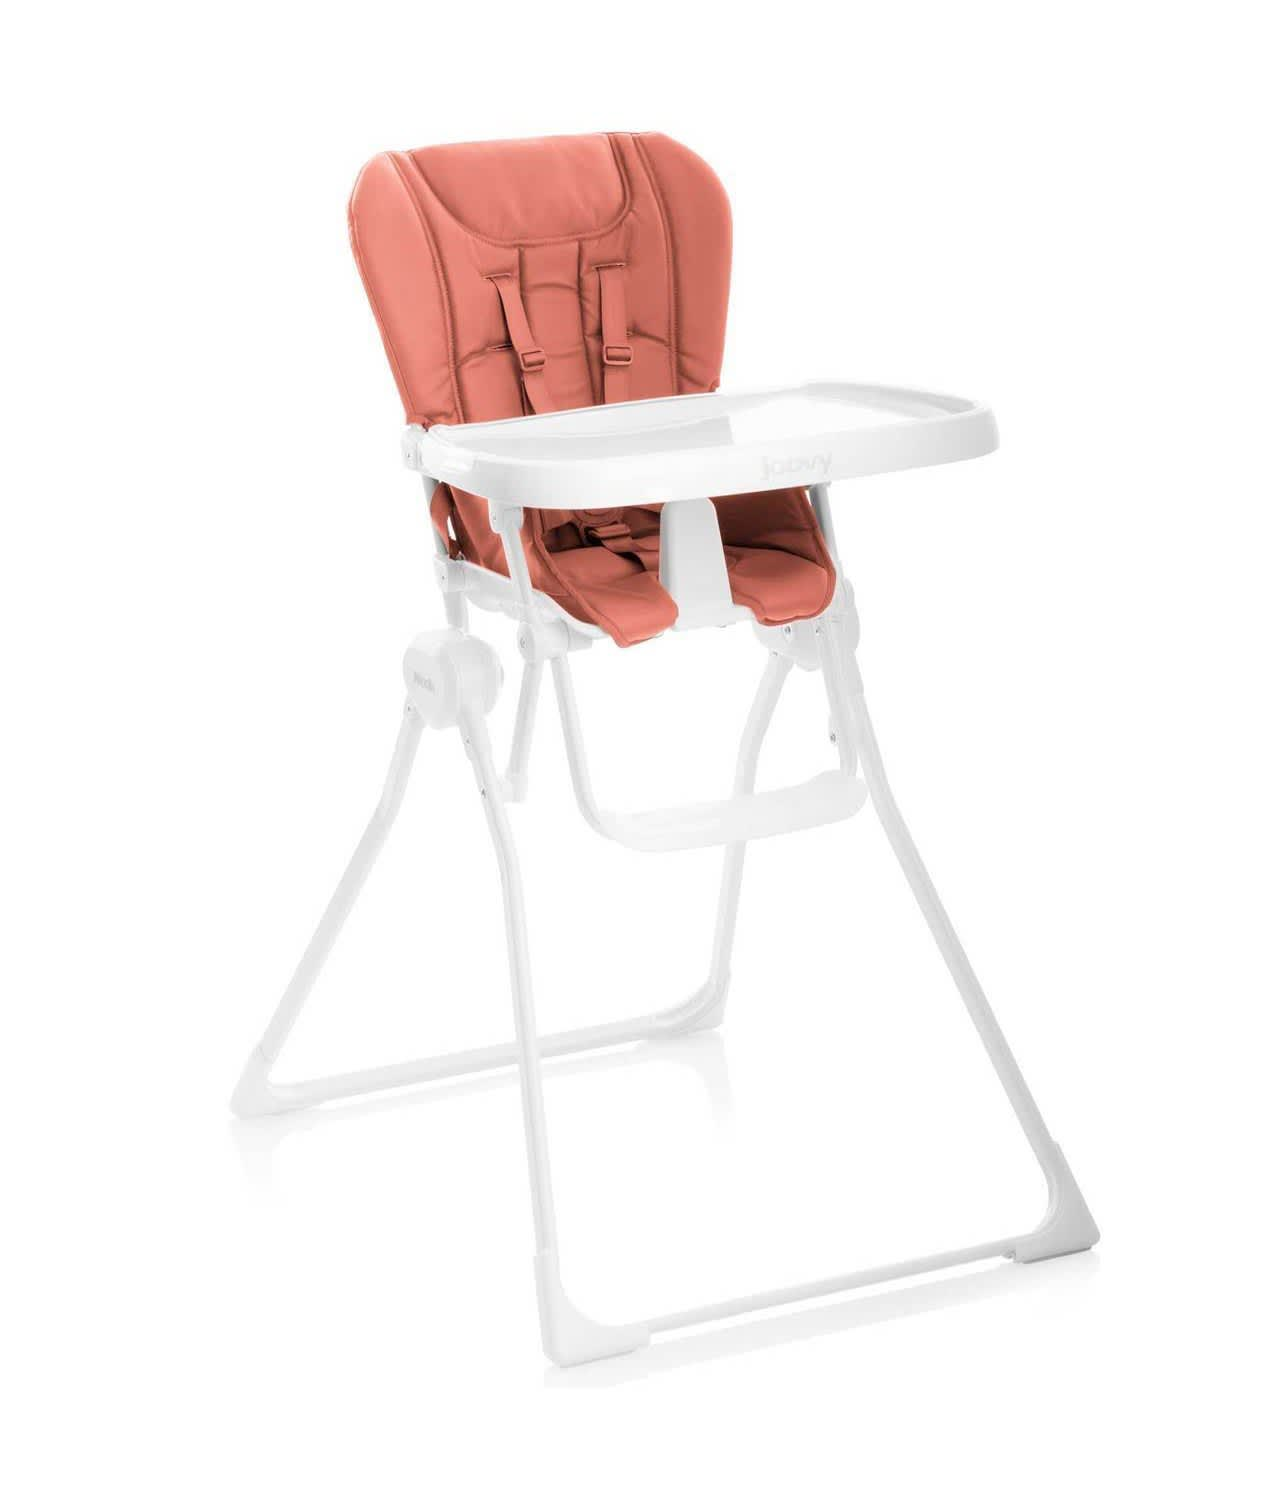 The Most Stylish and Easy-to-Clean High Chairs: gallery image 10